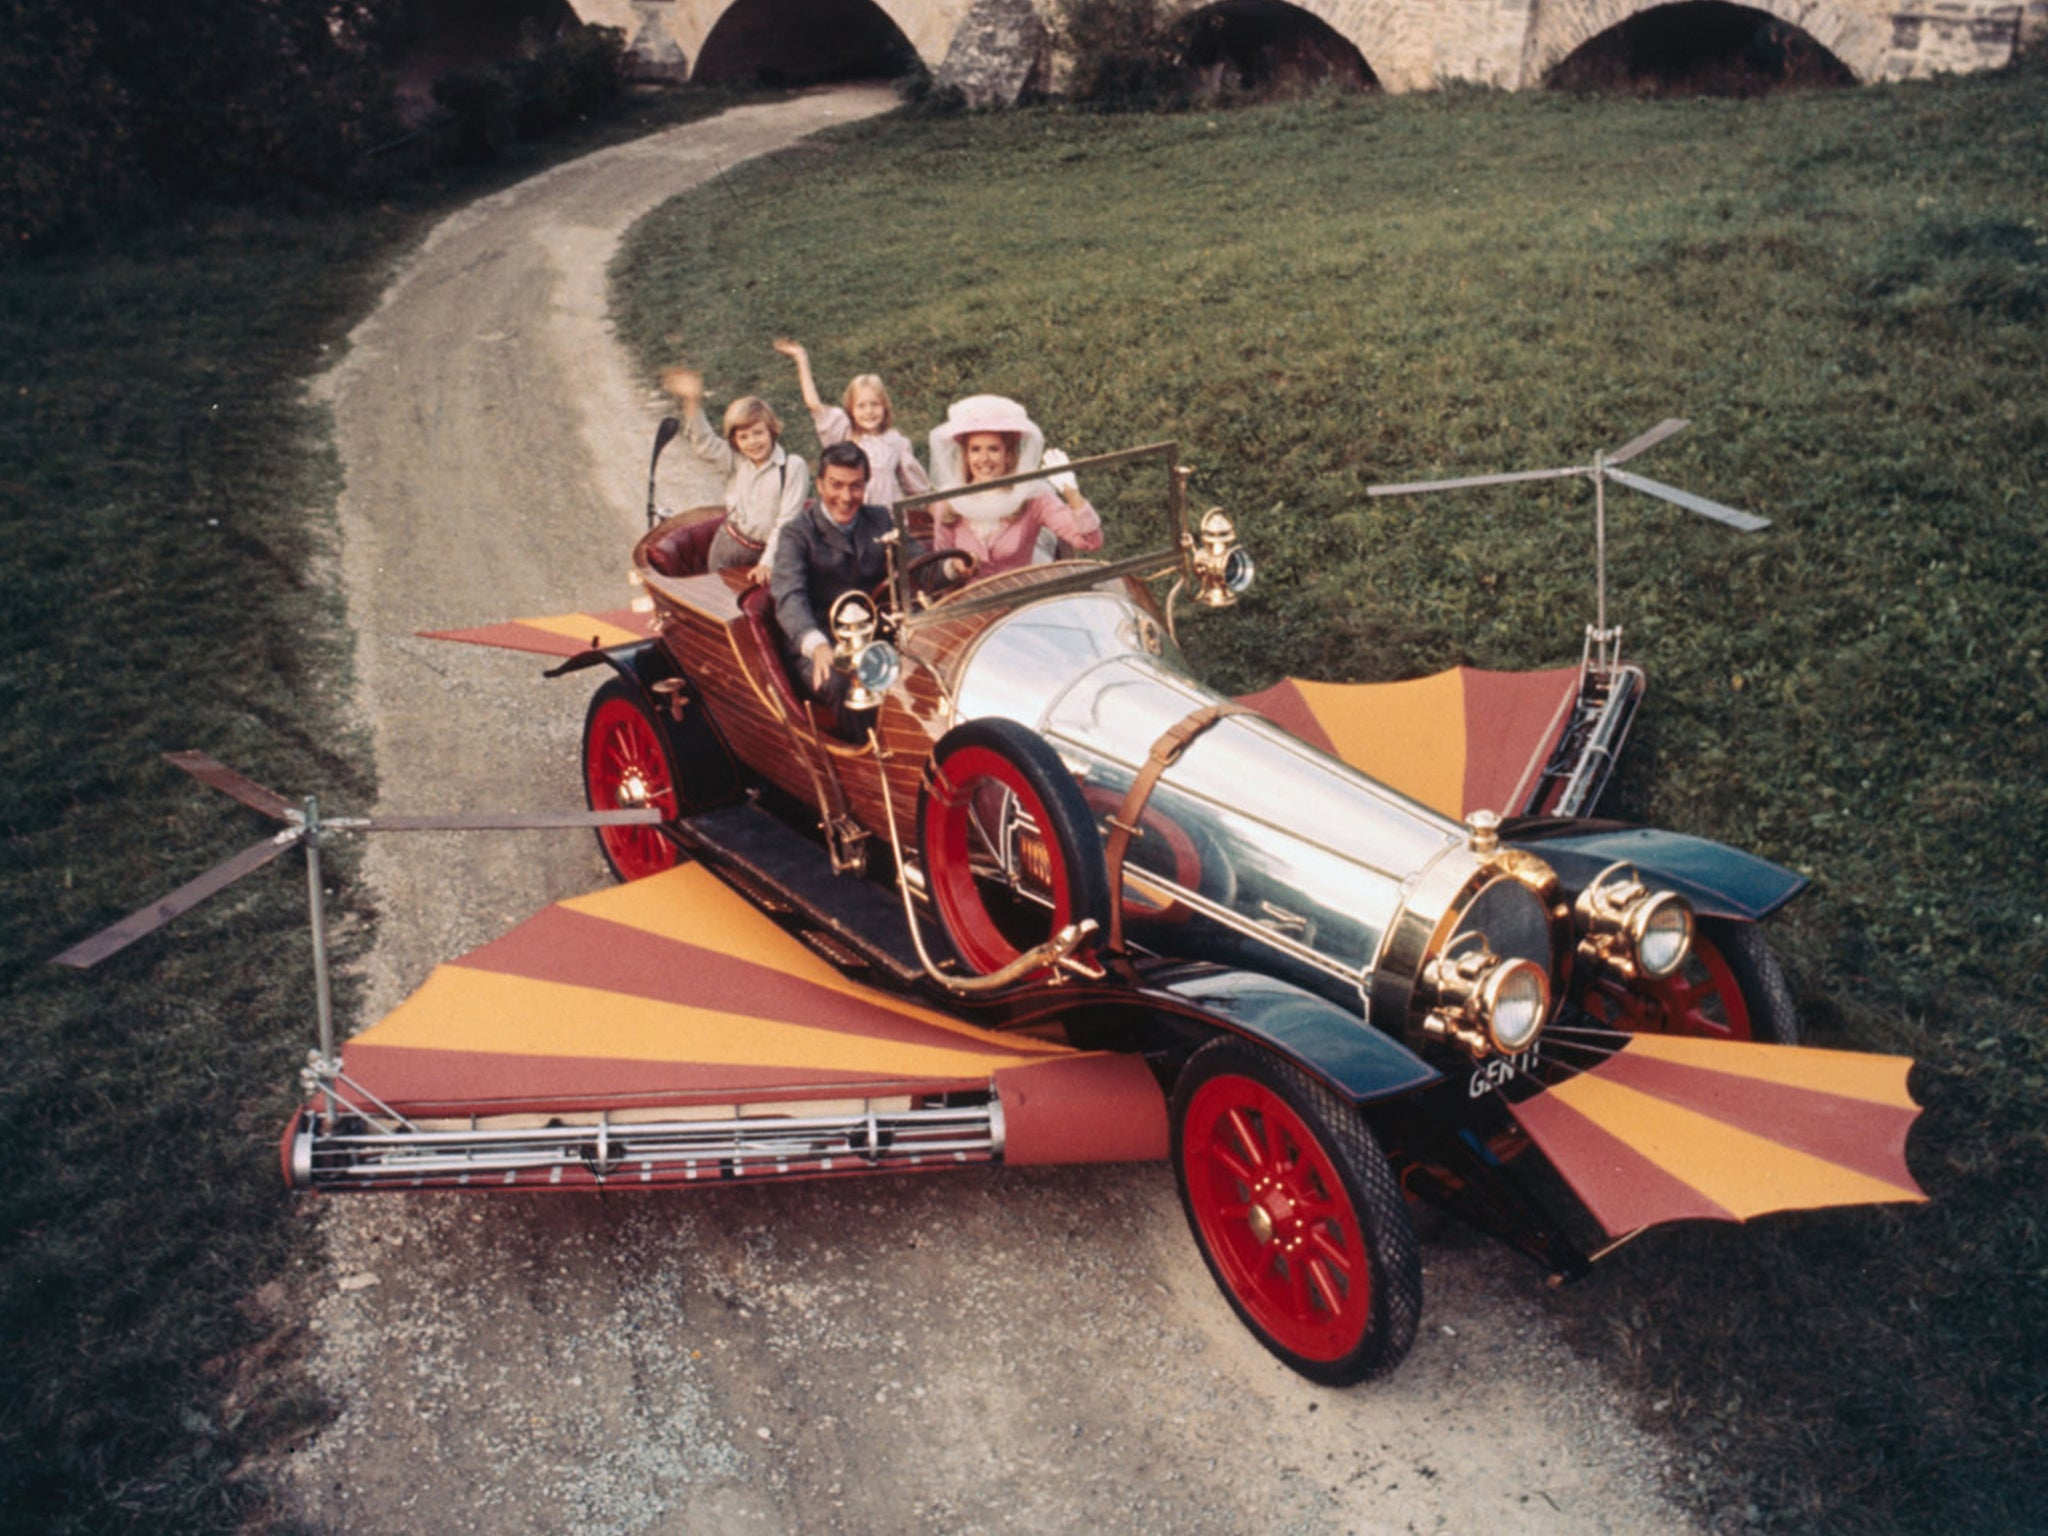 10 things you didn't know about Chitty Chitty Bang Bang